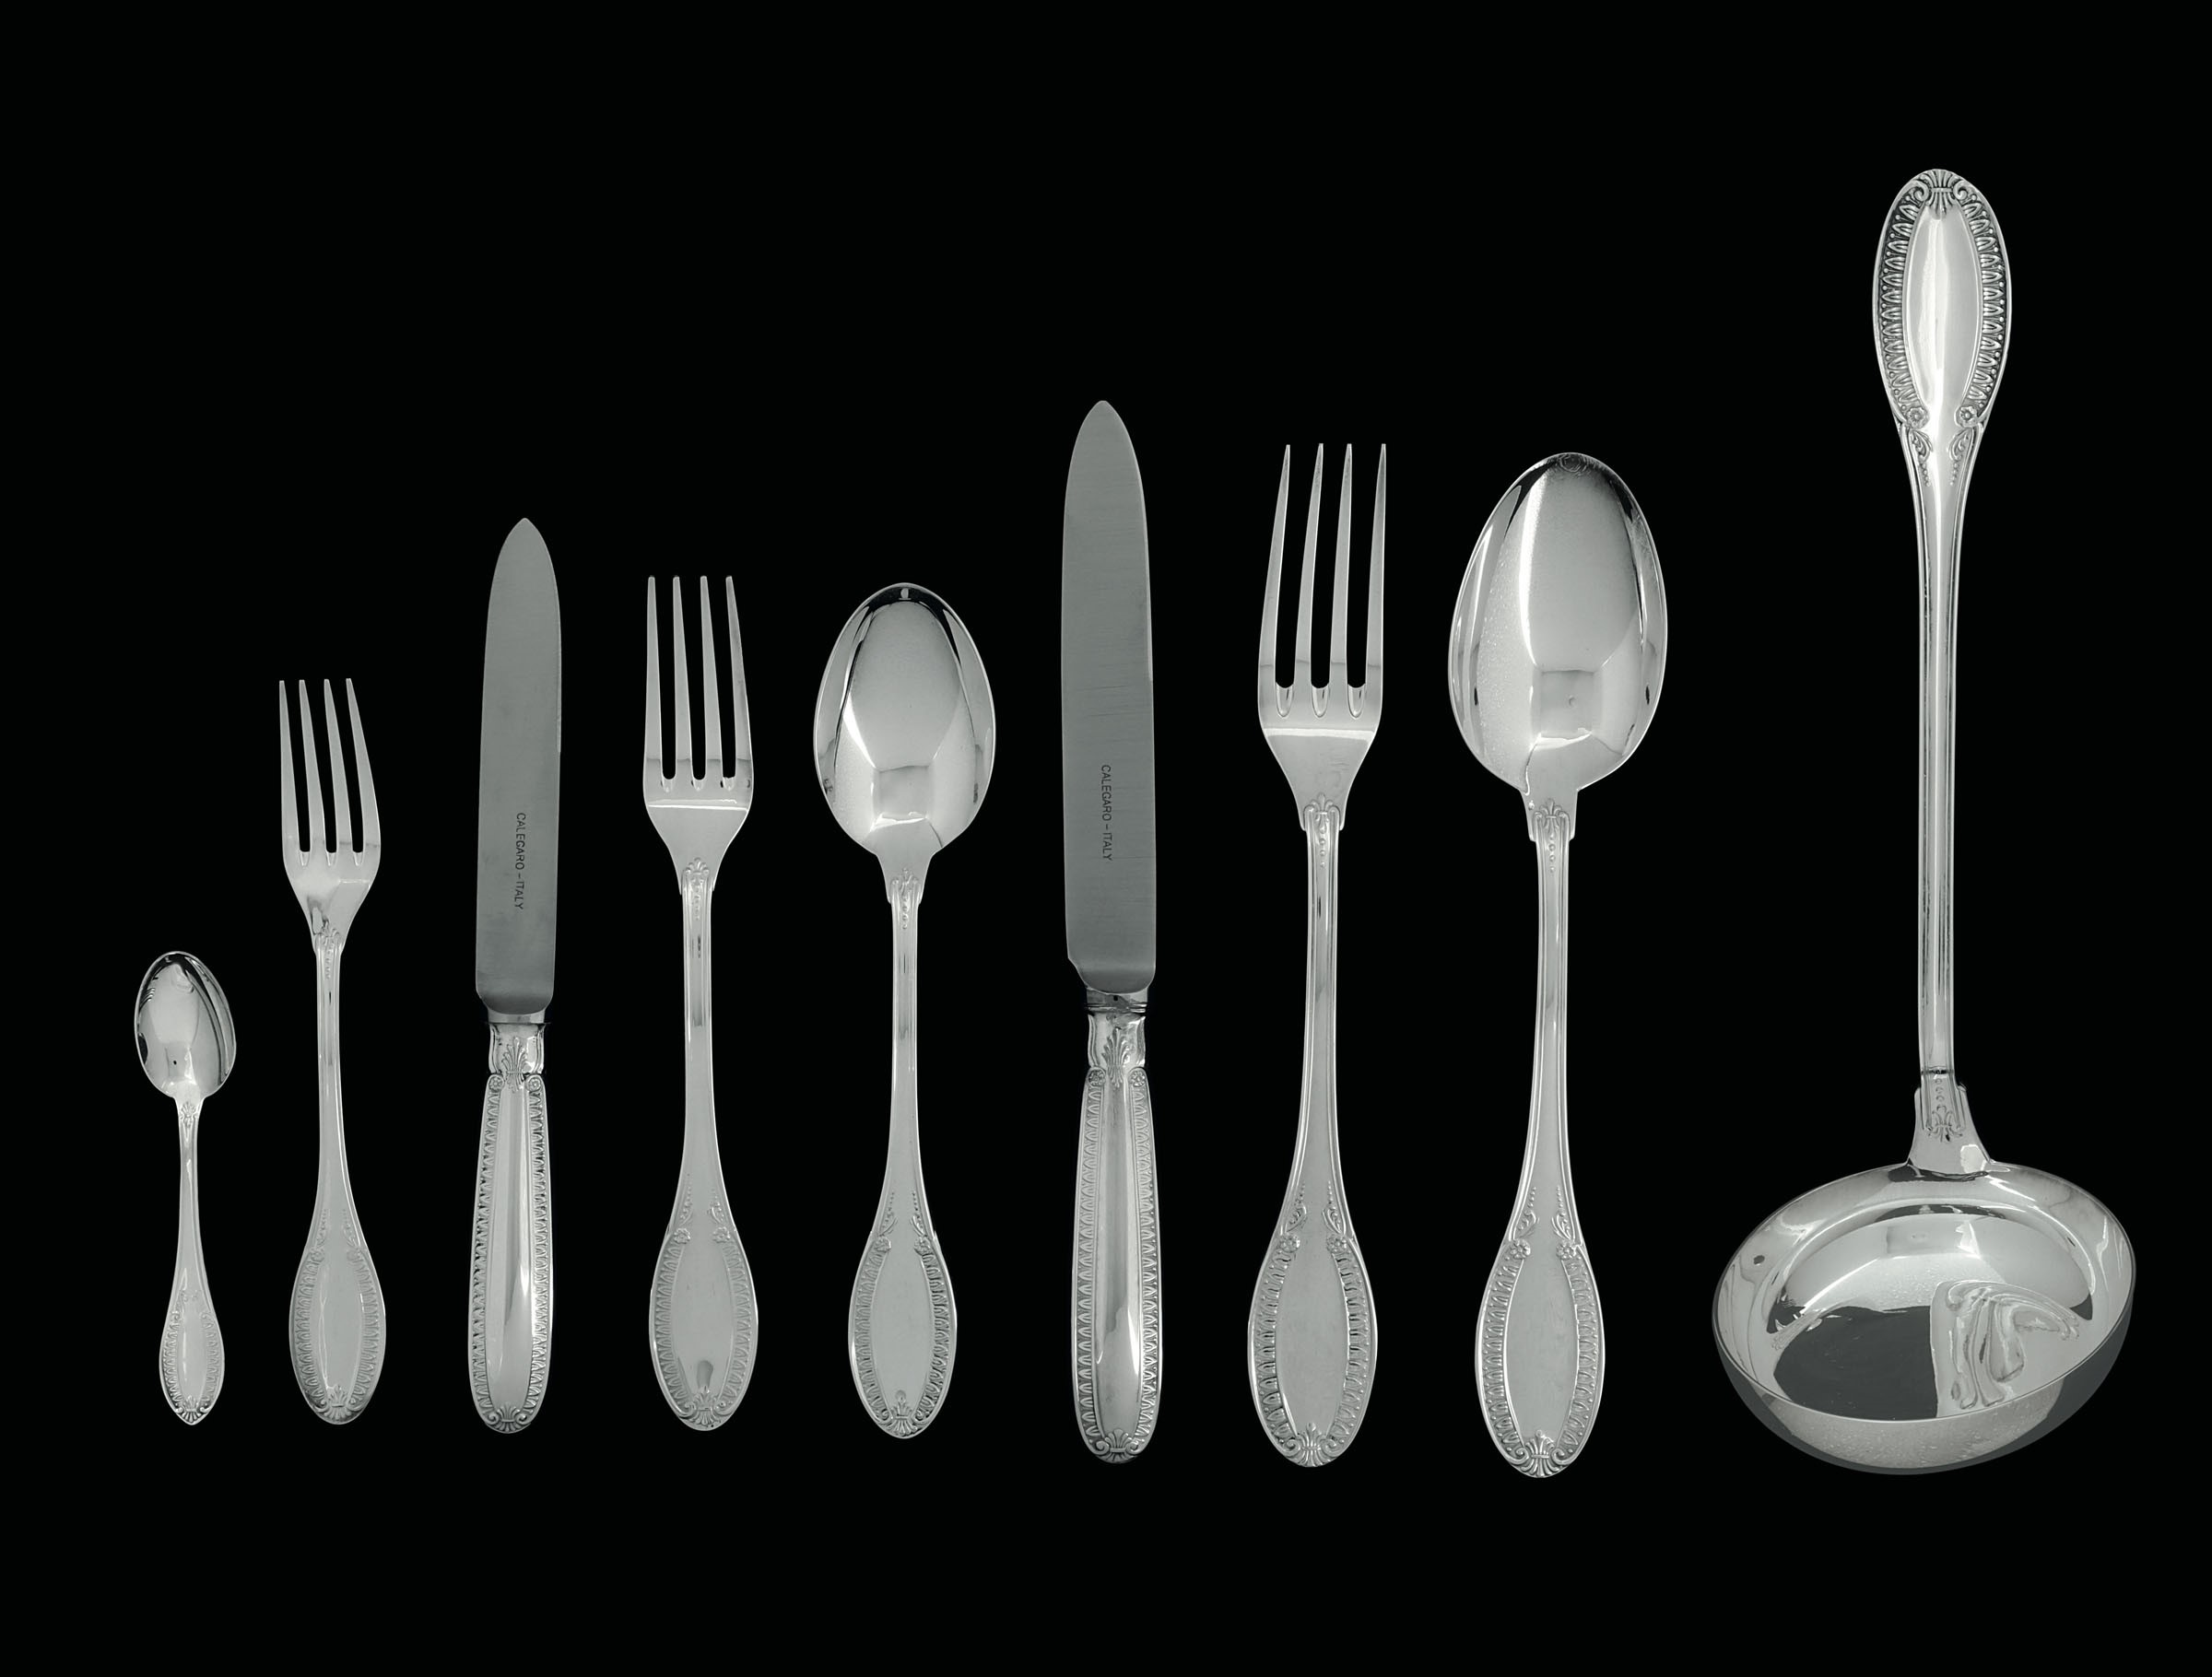 Lot 34 - A 75-piece silverware set - - A ladle, serving fork and spoon, 12 fruit knives, 12 [...]